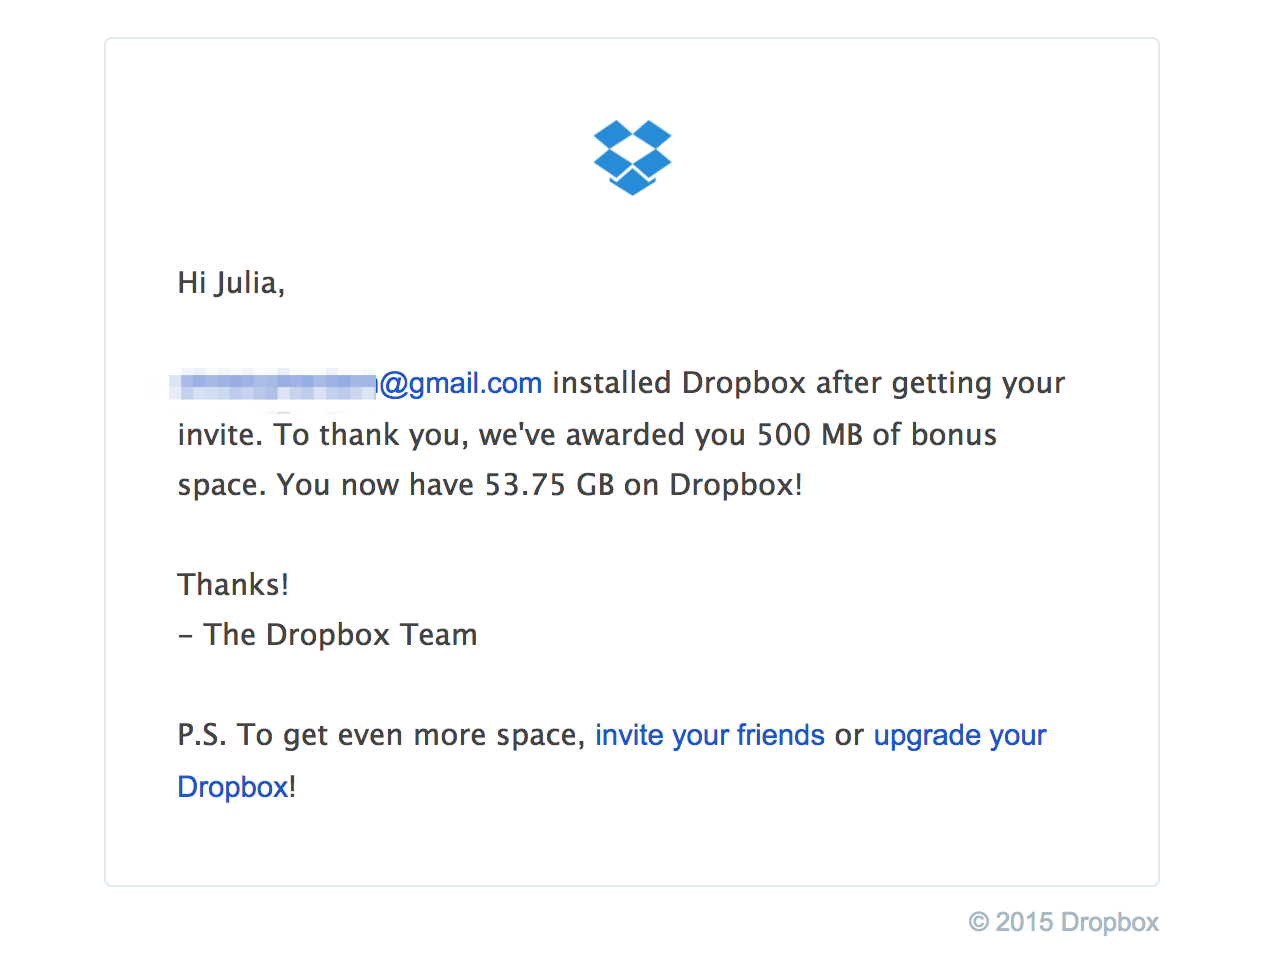 DropBoxs Thank You For Referral Email Shows Gratitude Their Users Who Referred A Friend Awarding Them With 500 MB Bonus Space